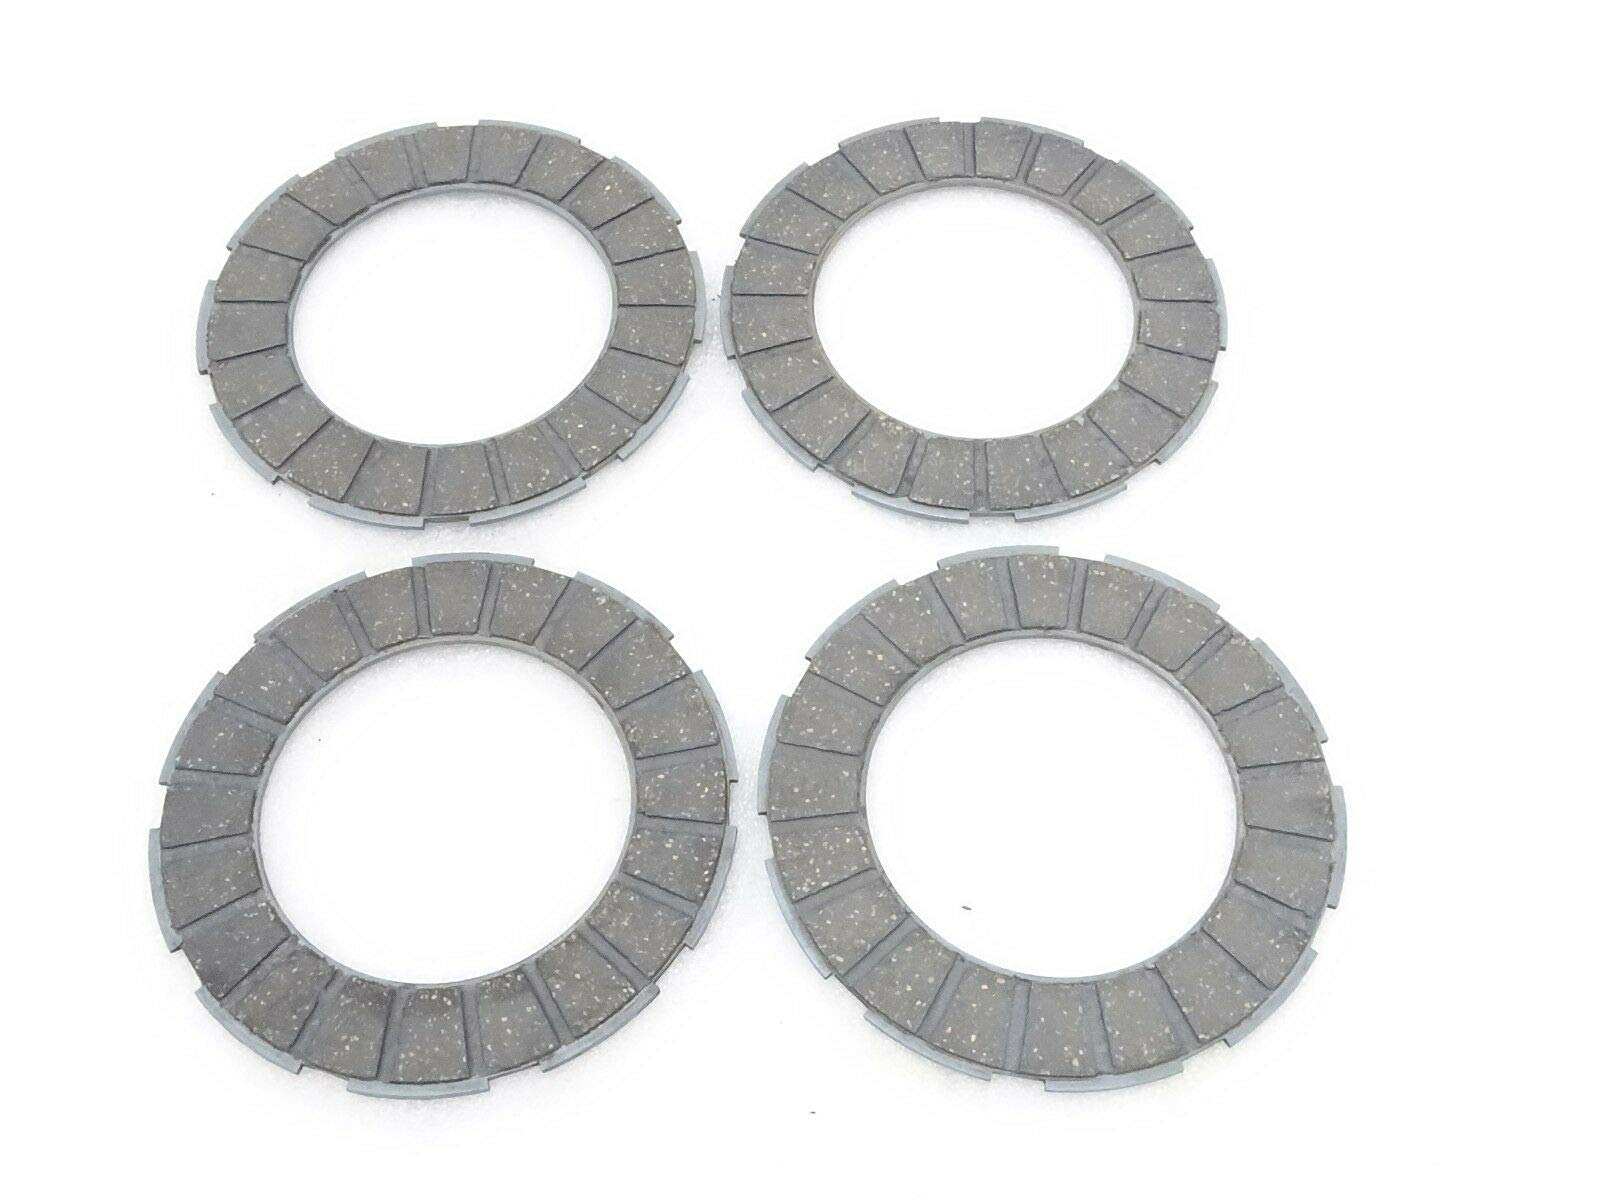 Royal Crusaders MATCHLESS CIVIL MODEL CLUTCH PLATE SET OF 4